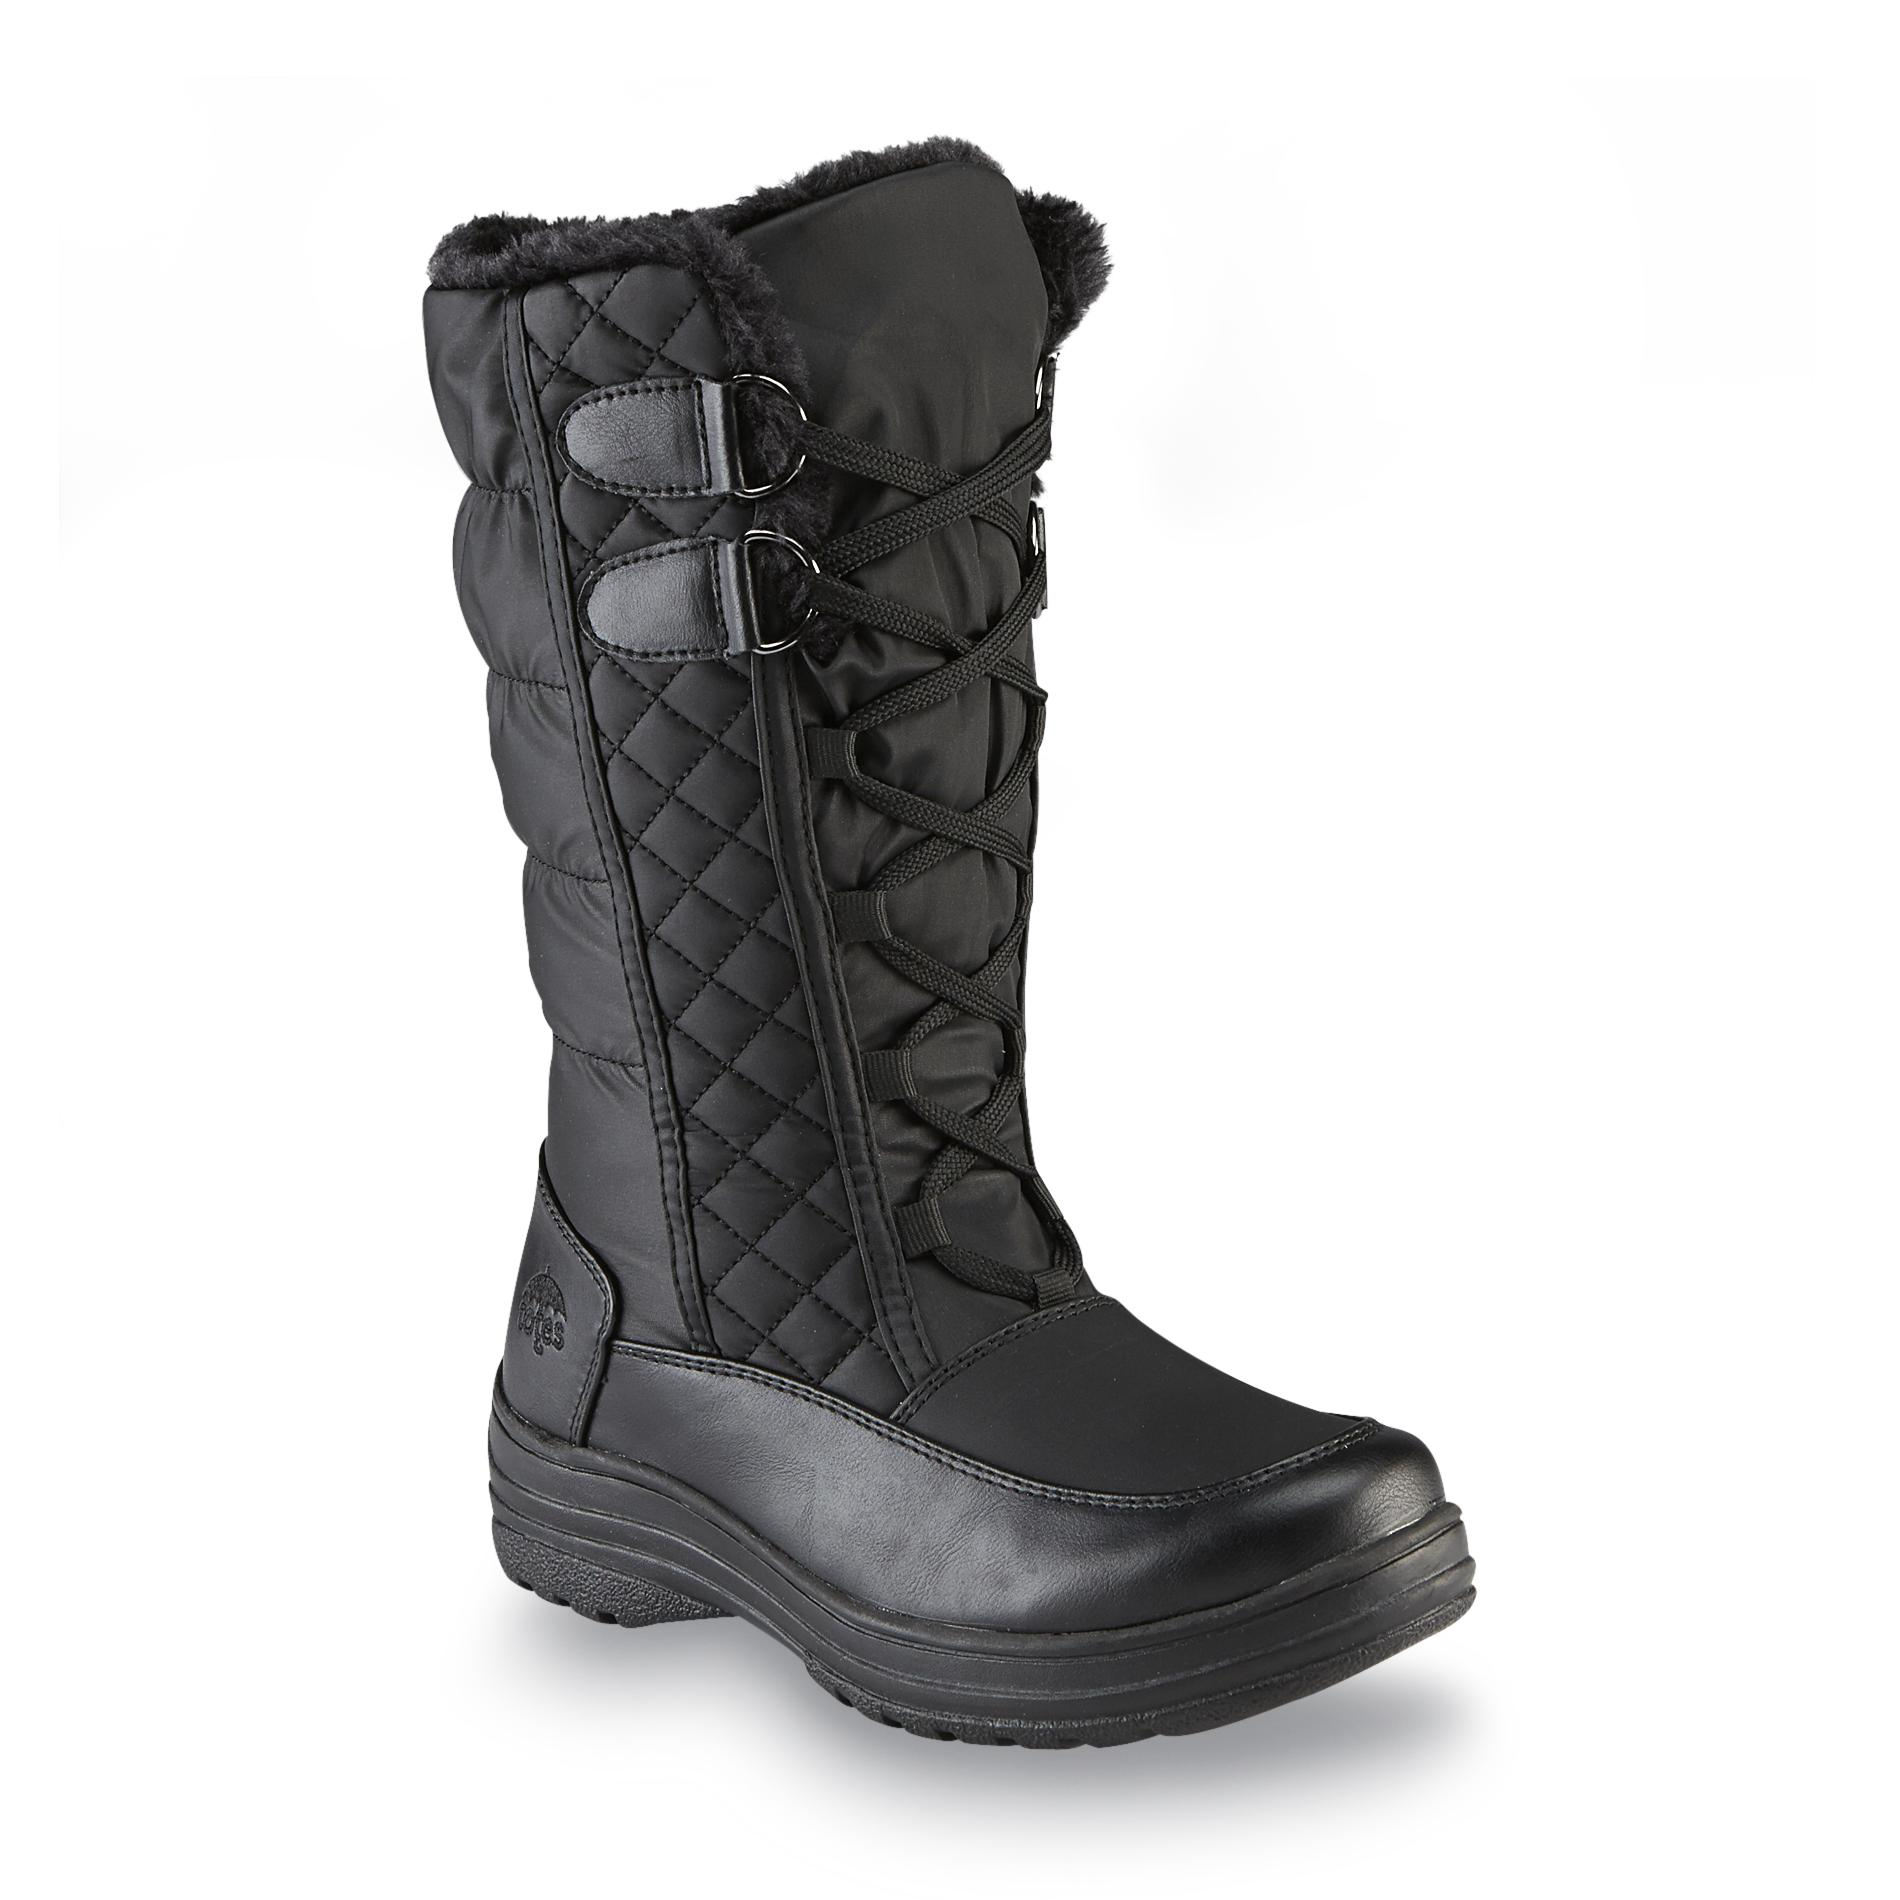 Totes Women' Claudia Winter Weather Boot - Black